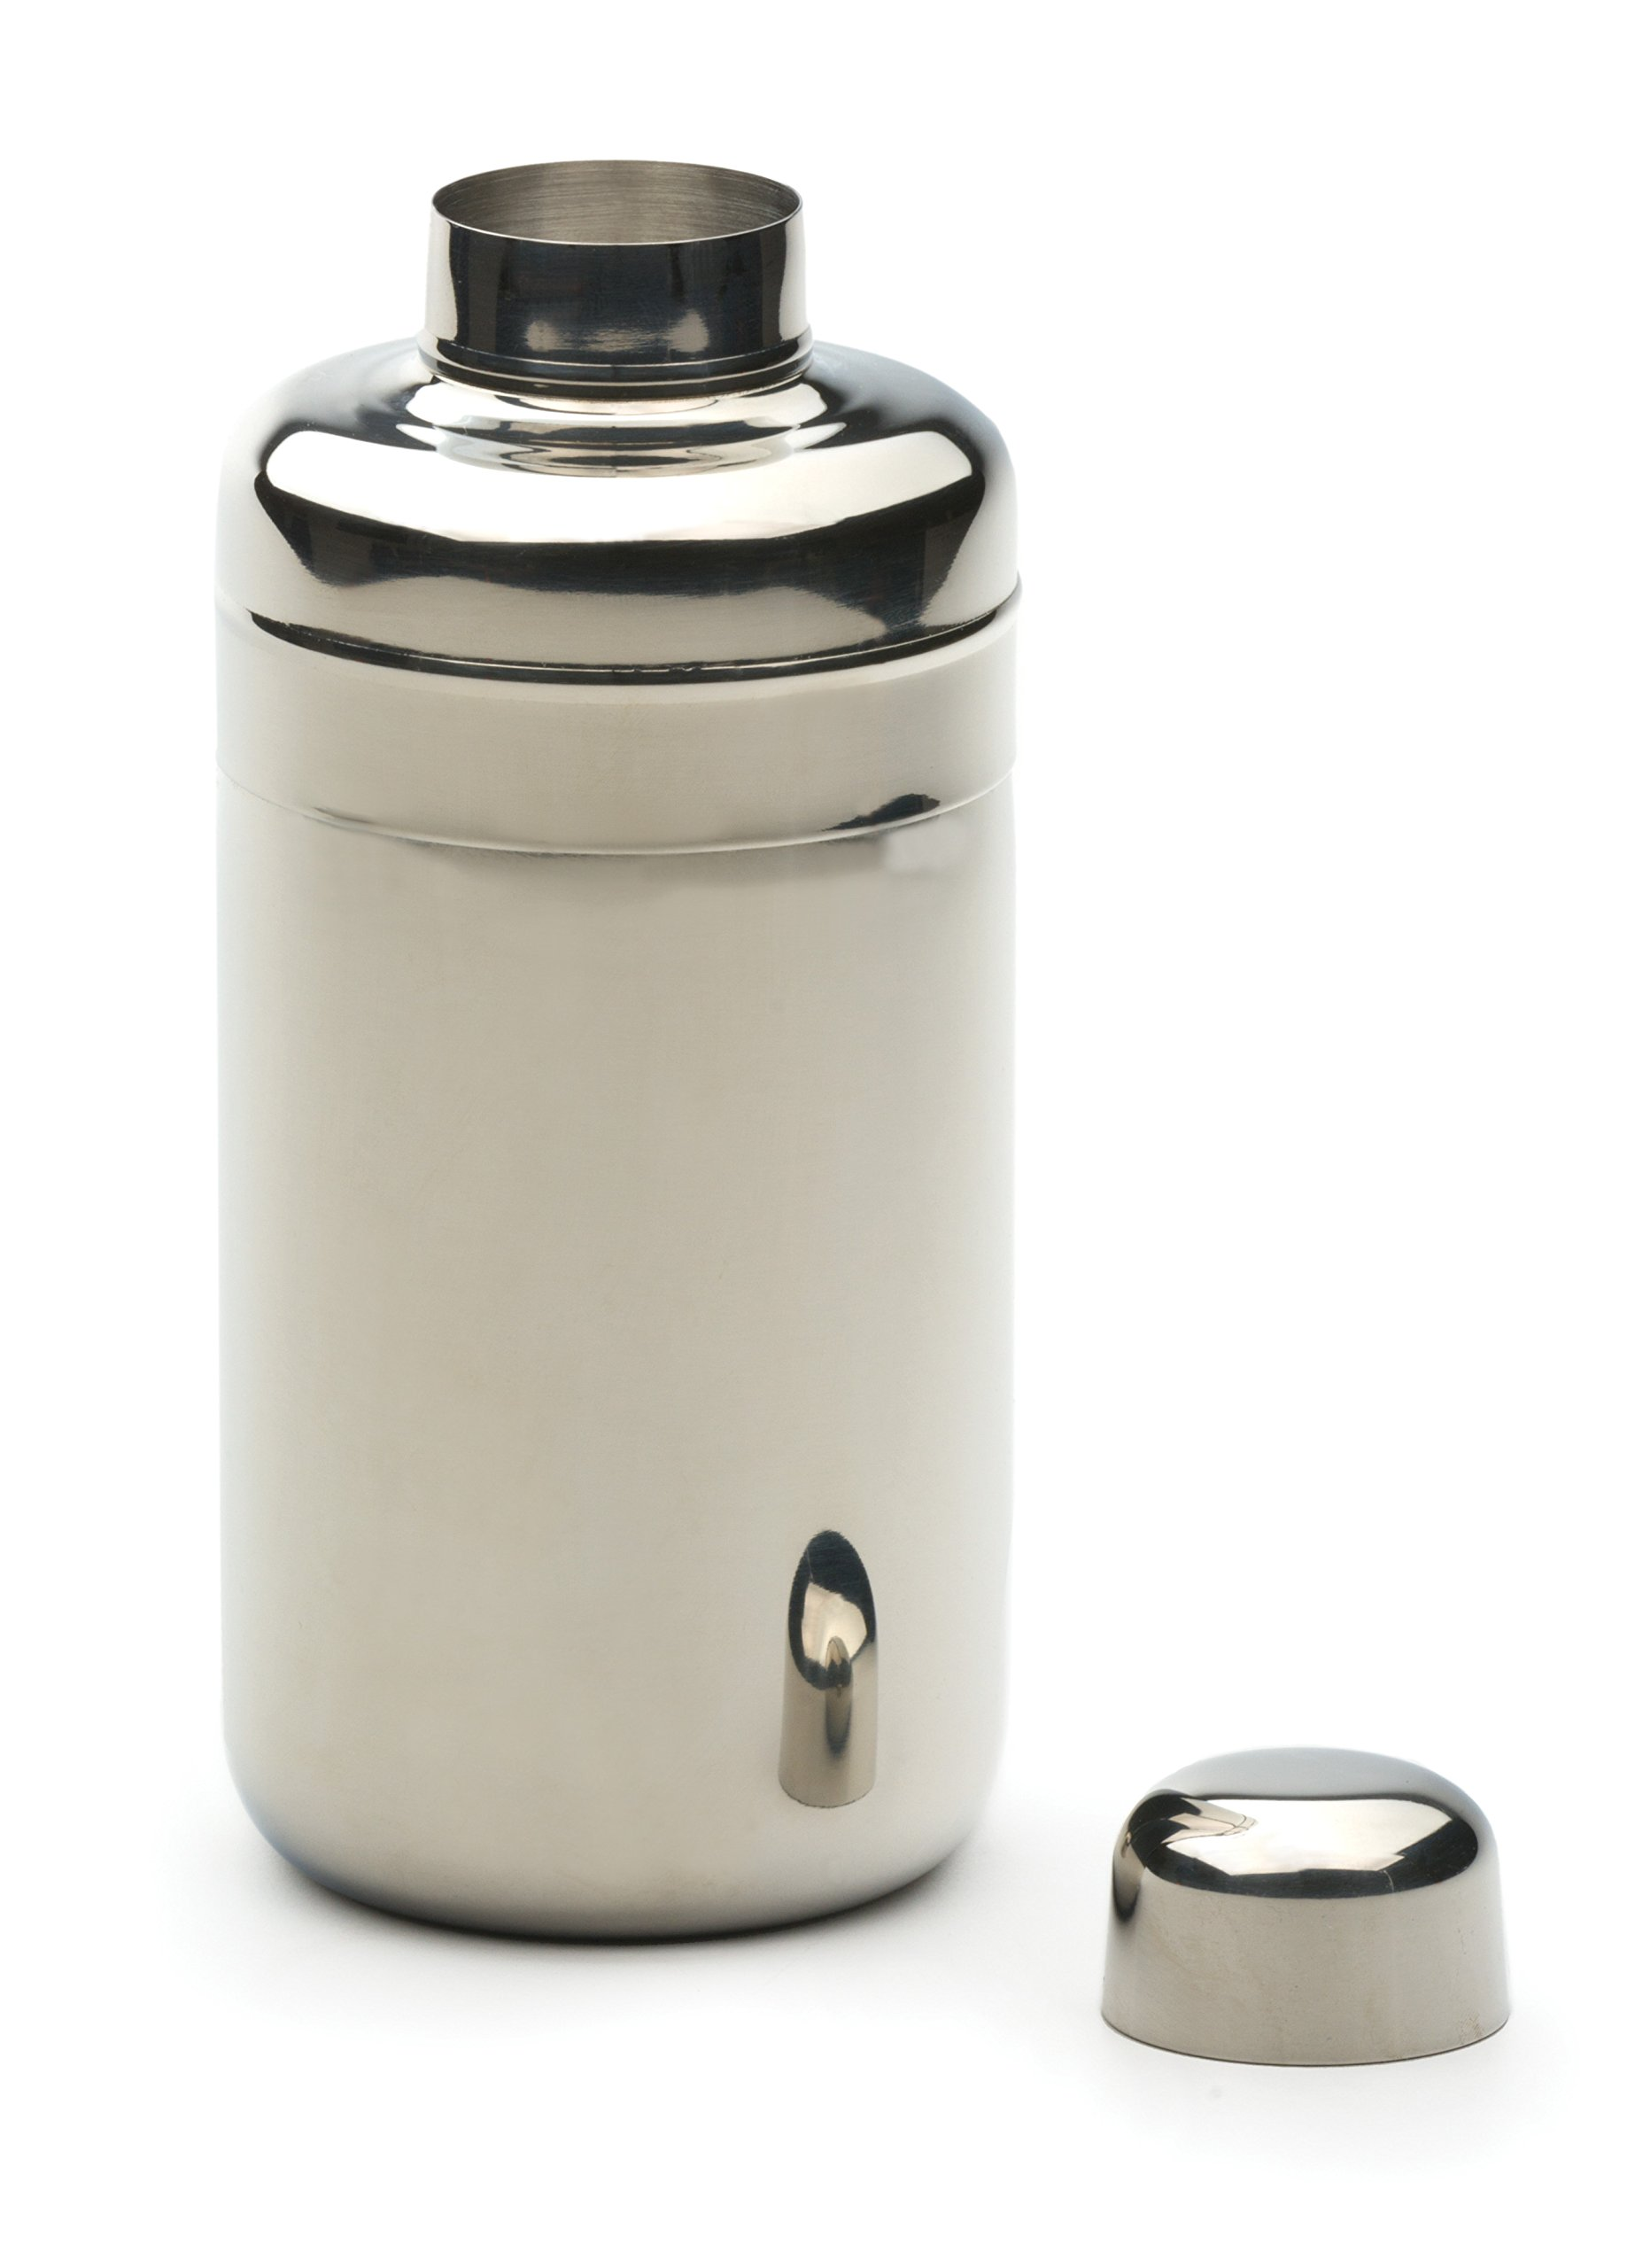 RSVP Endurance 18/8 Stainless Steel Modern Design Cocktail Shaker, 24 Ounce (MCS-24)